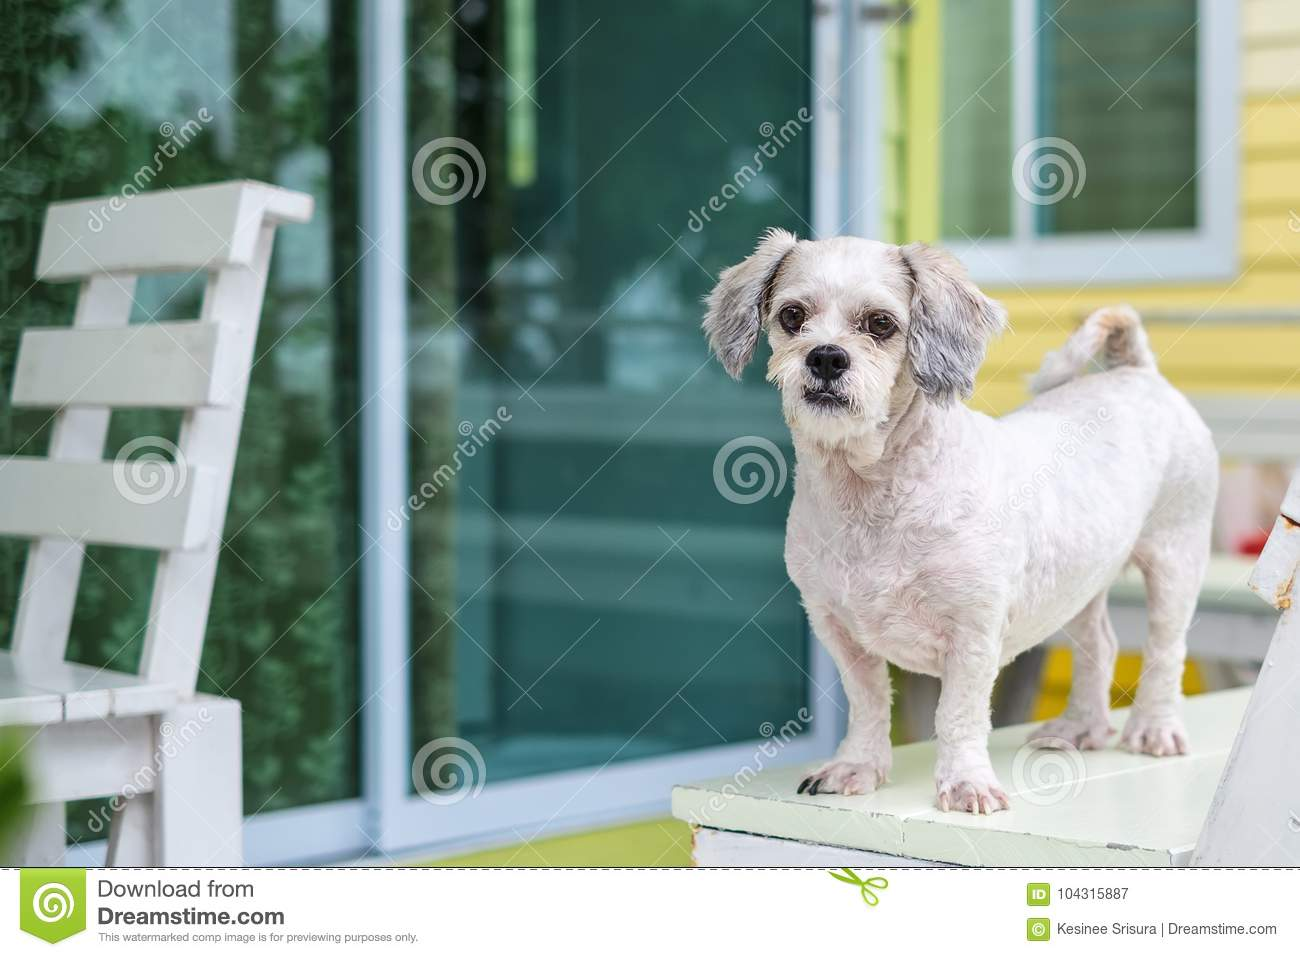 White Short Hair Shih Tzu Dog Standing On The Terrace Stock Image Image Of Outdoor Domestic 104315887